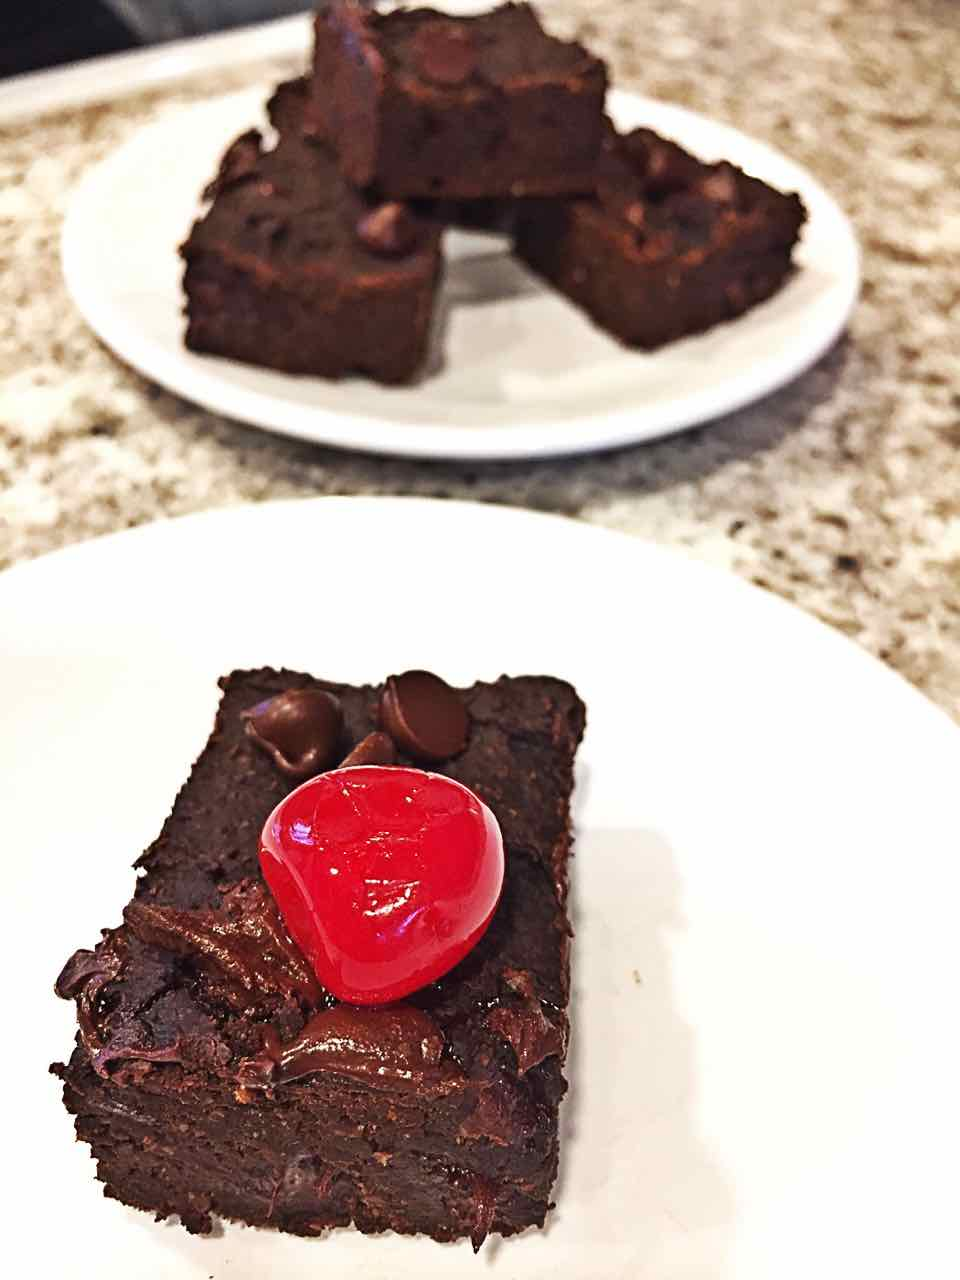 Image of gooey delicious vegan brownie with a cherry on top.